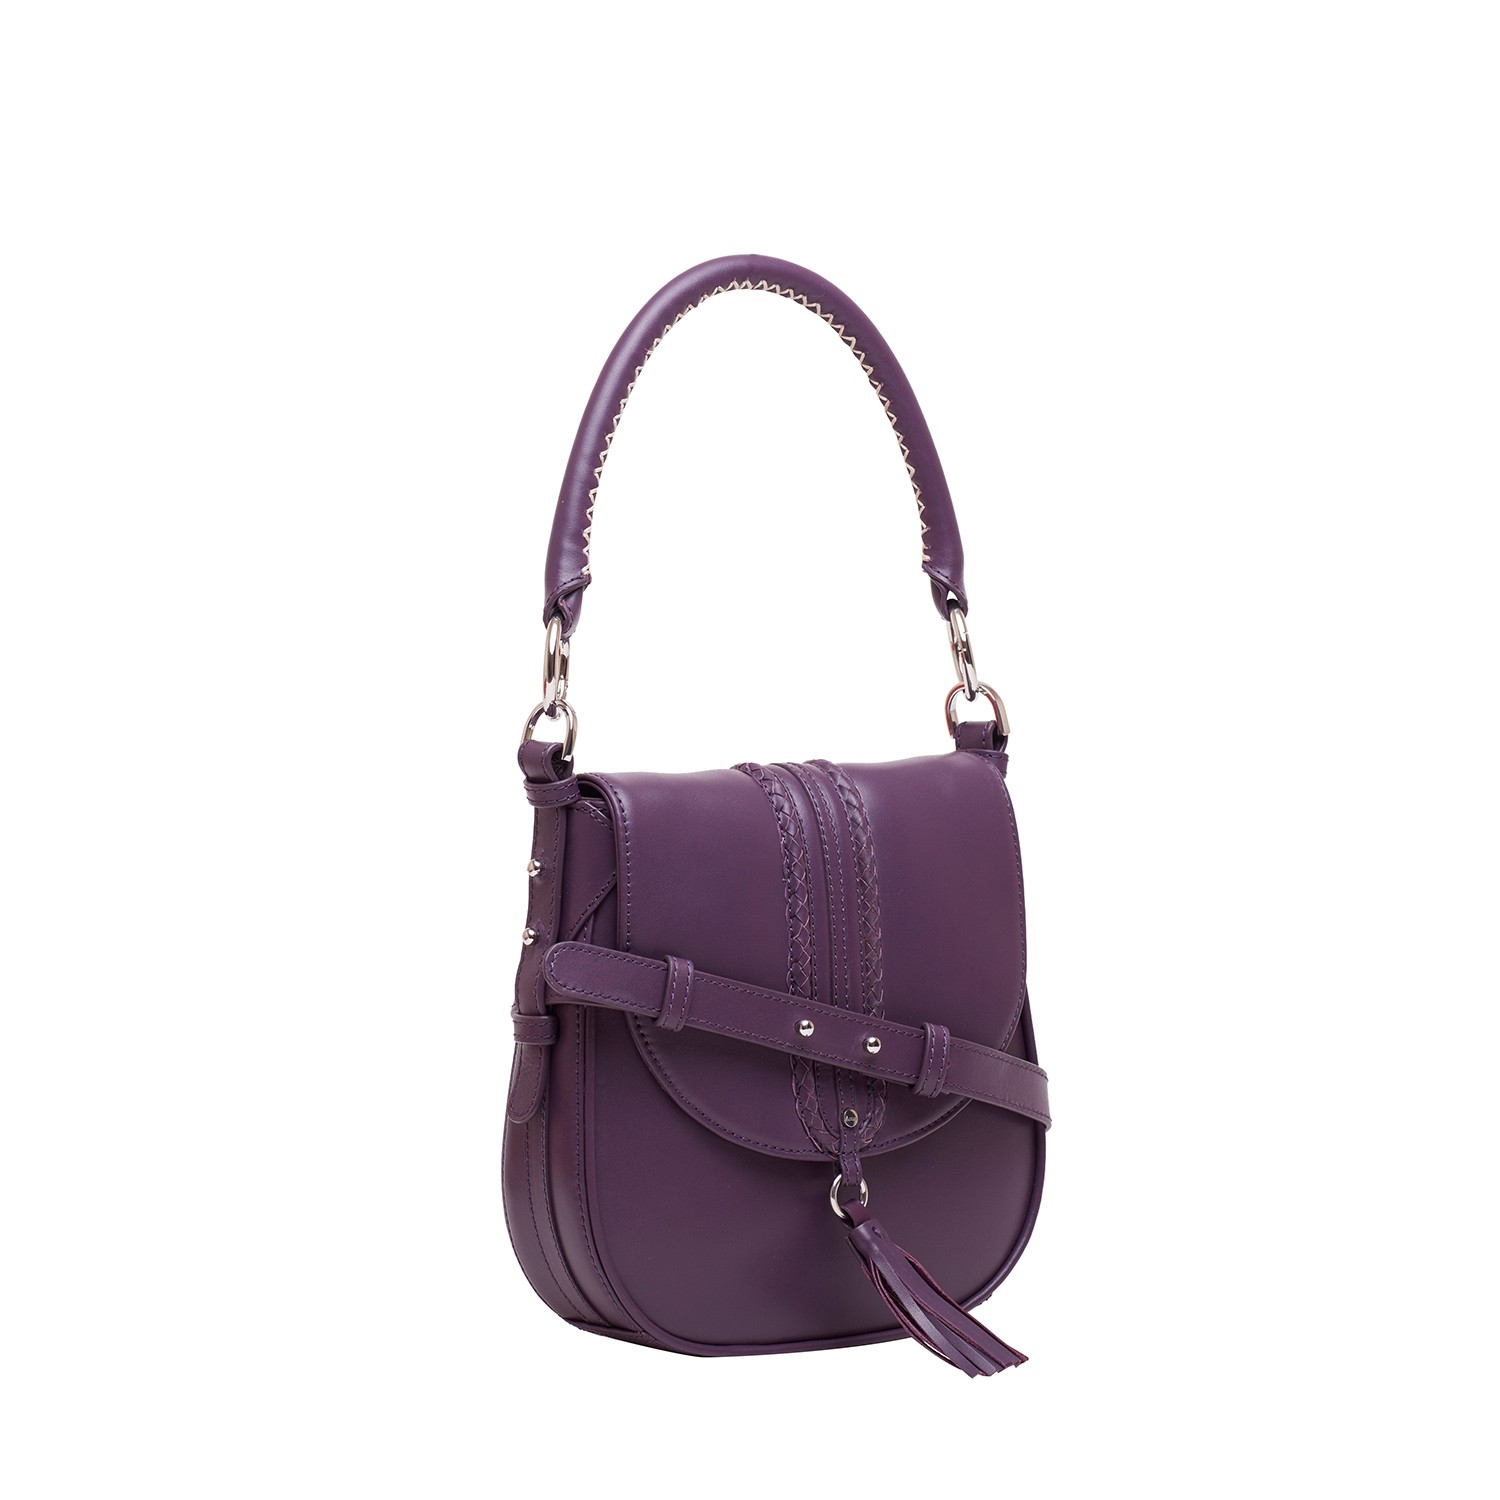 Aubergine Acuir Handbag For Women Cross Body